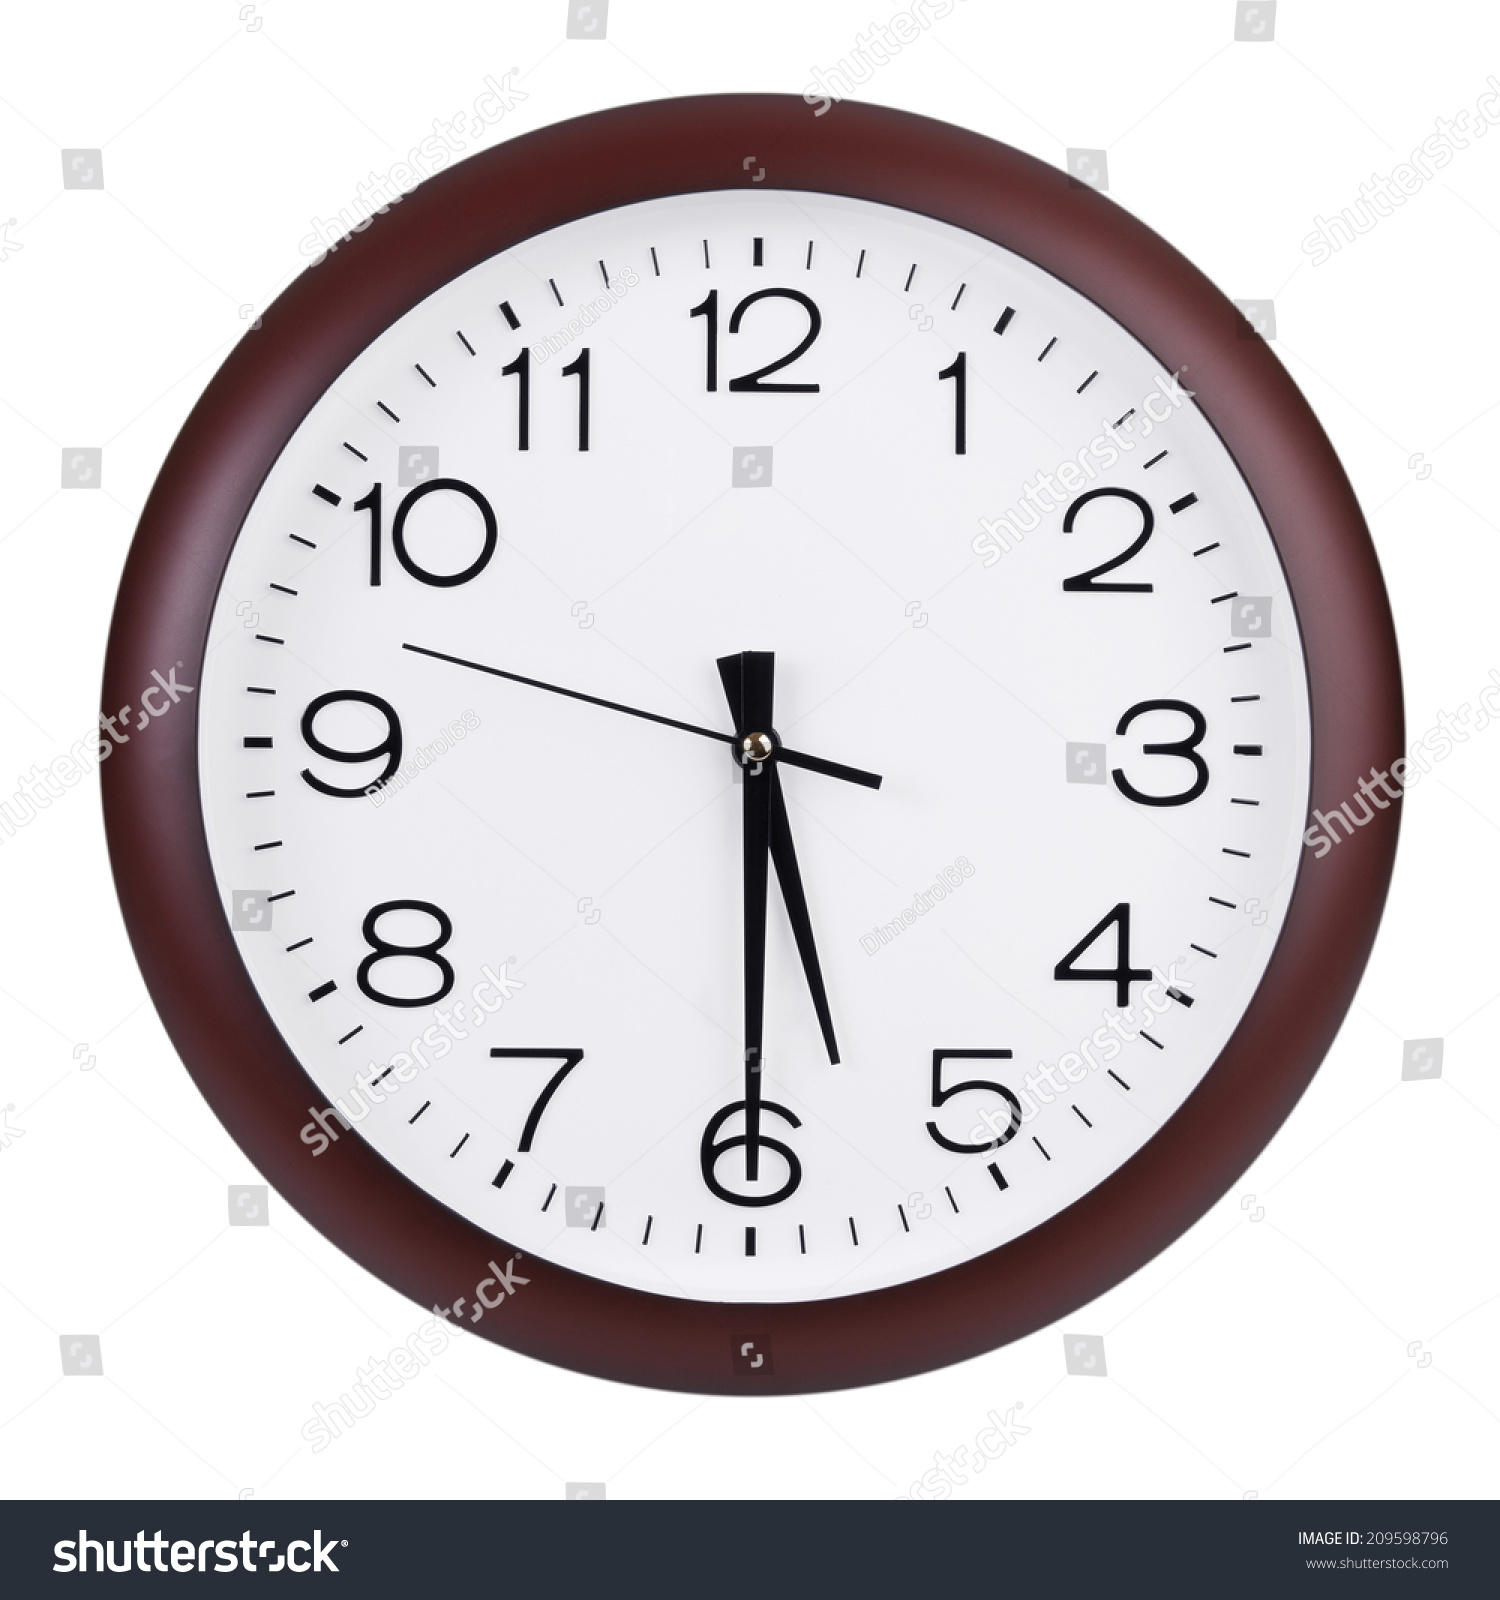 Half Past Five Oclock On Dial Stock Photo 209598796 - Shutterstock